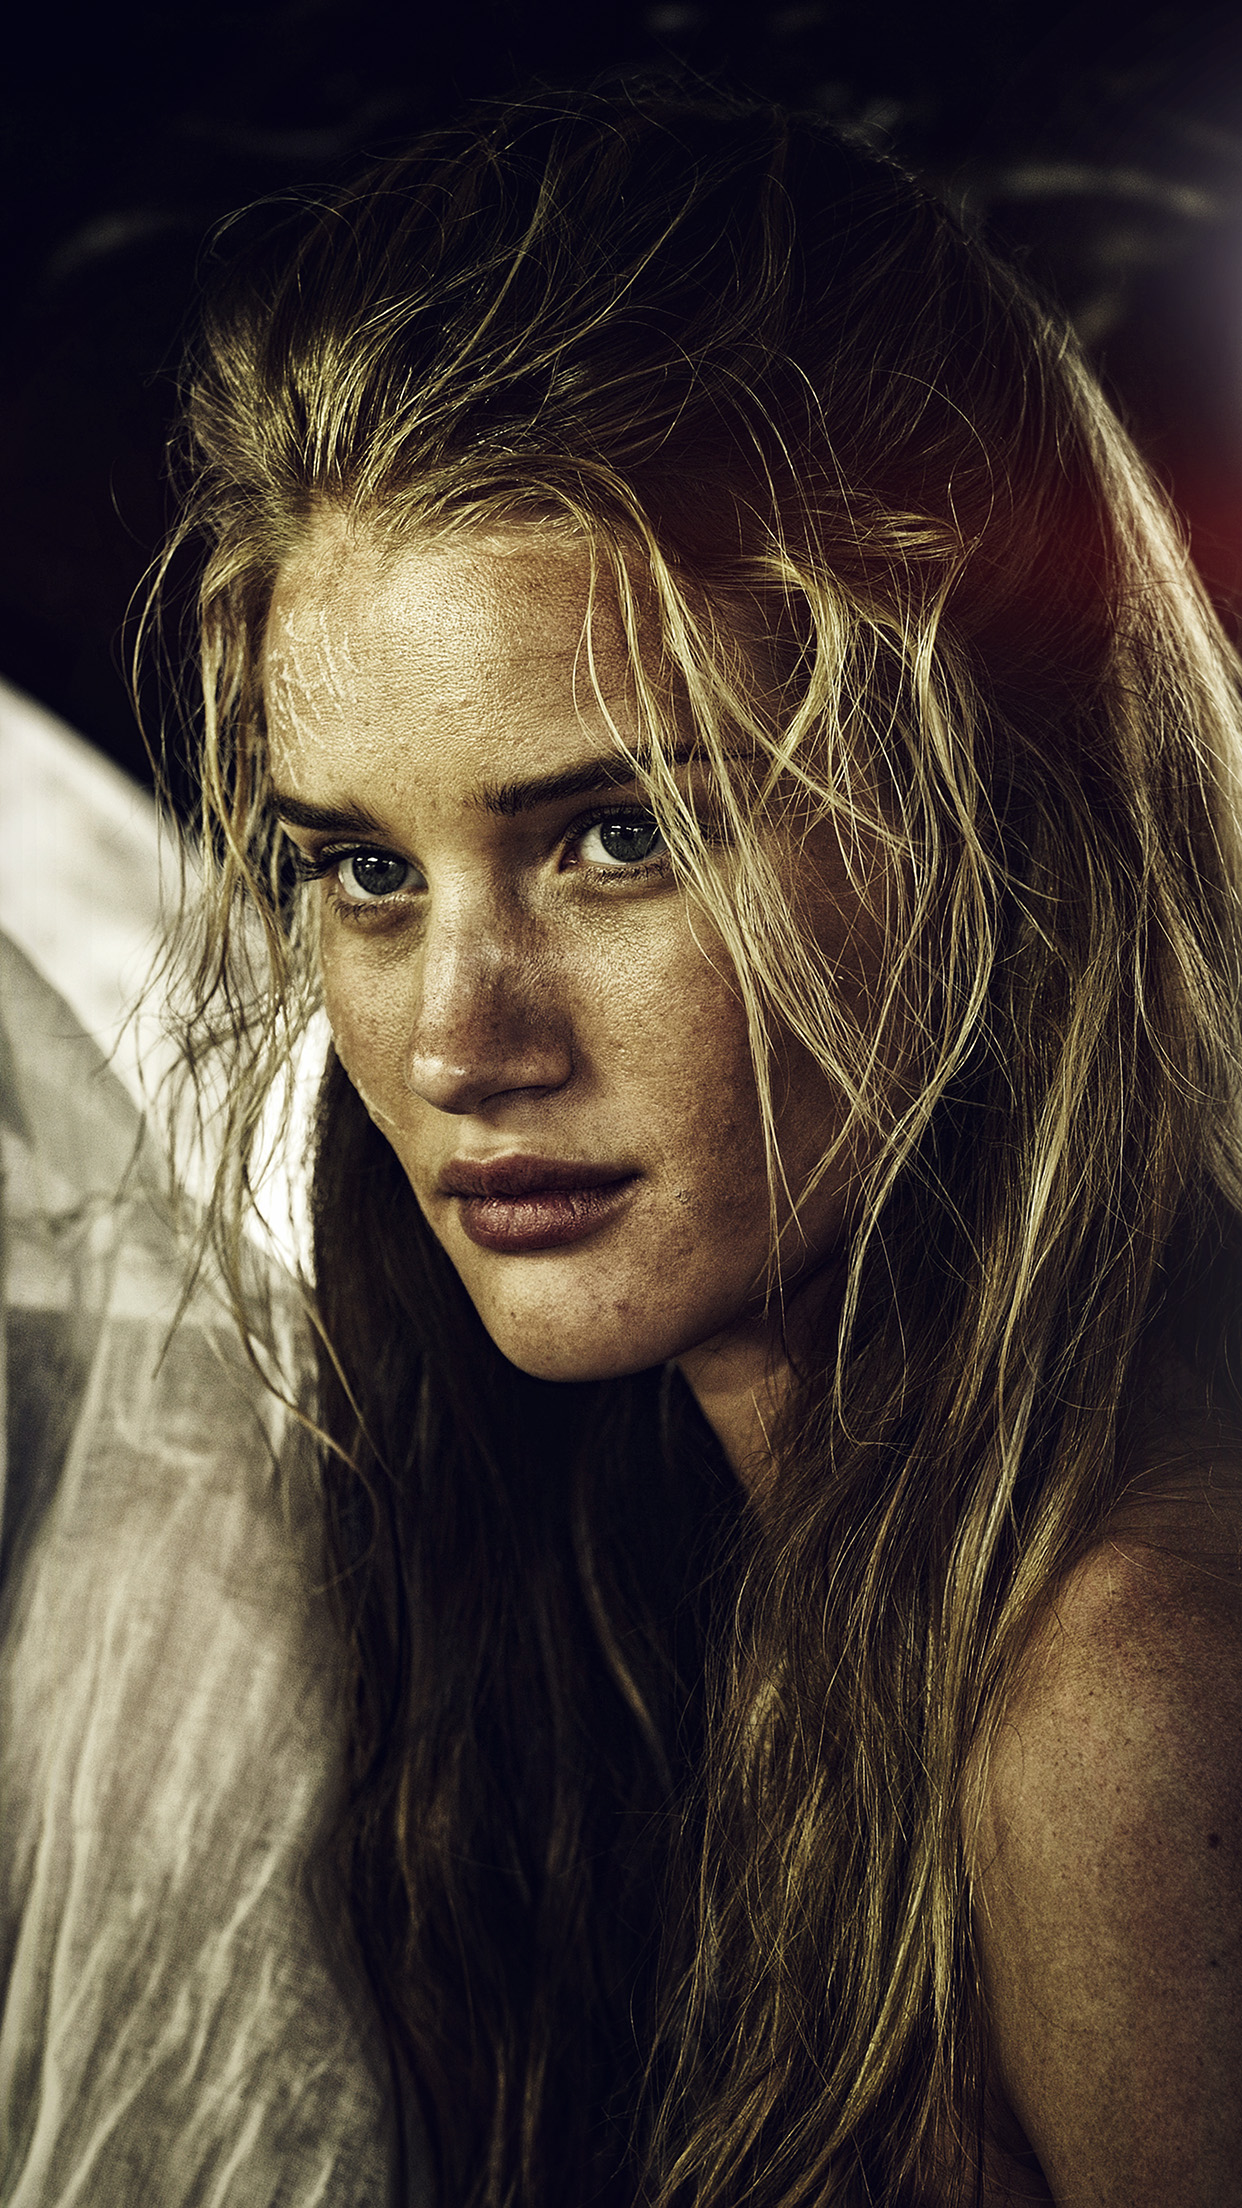 Madmax Rosie Huntington Whiteley Film Girl Android wallpaper